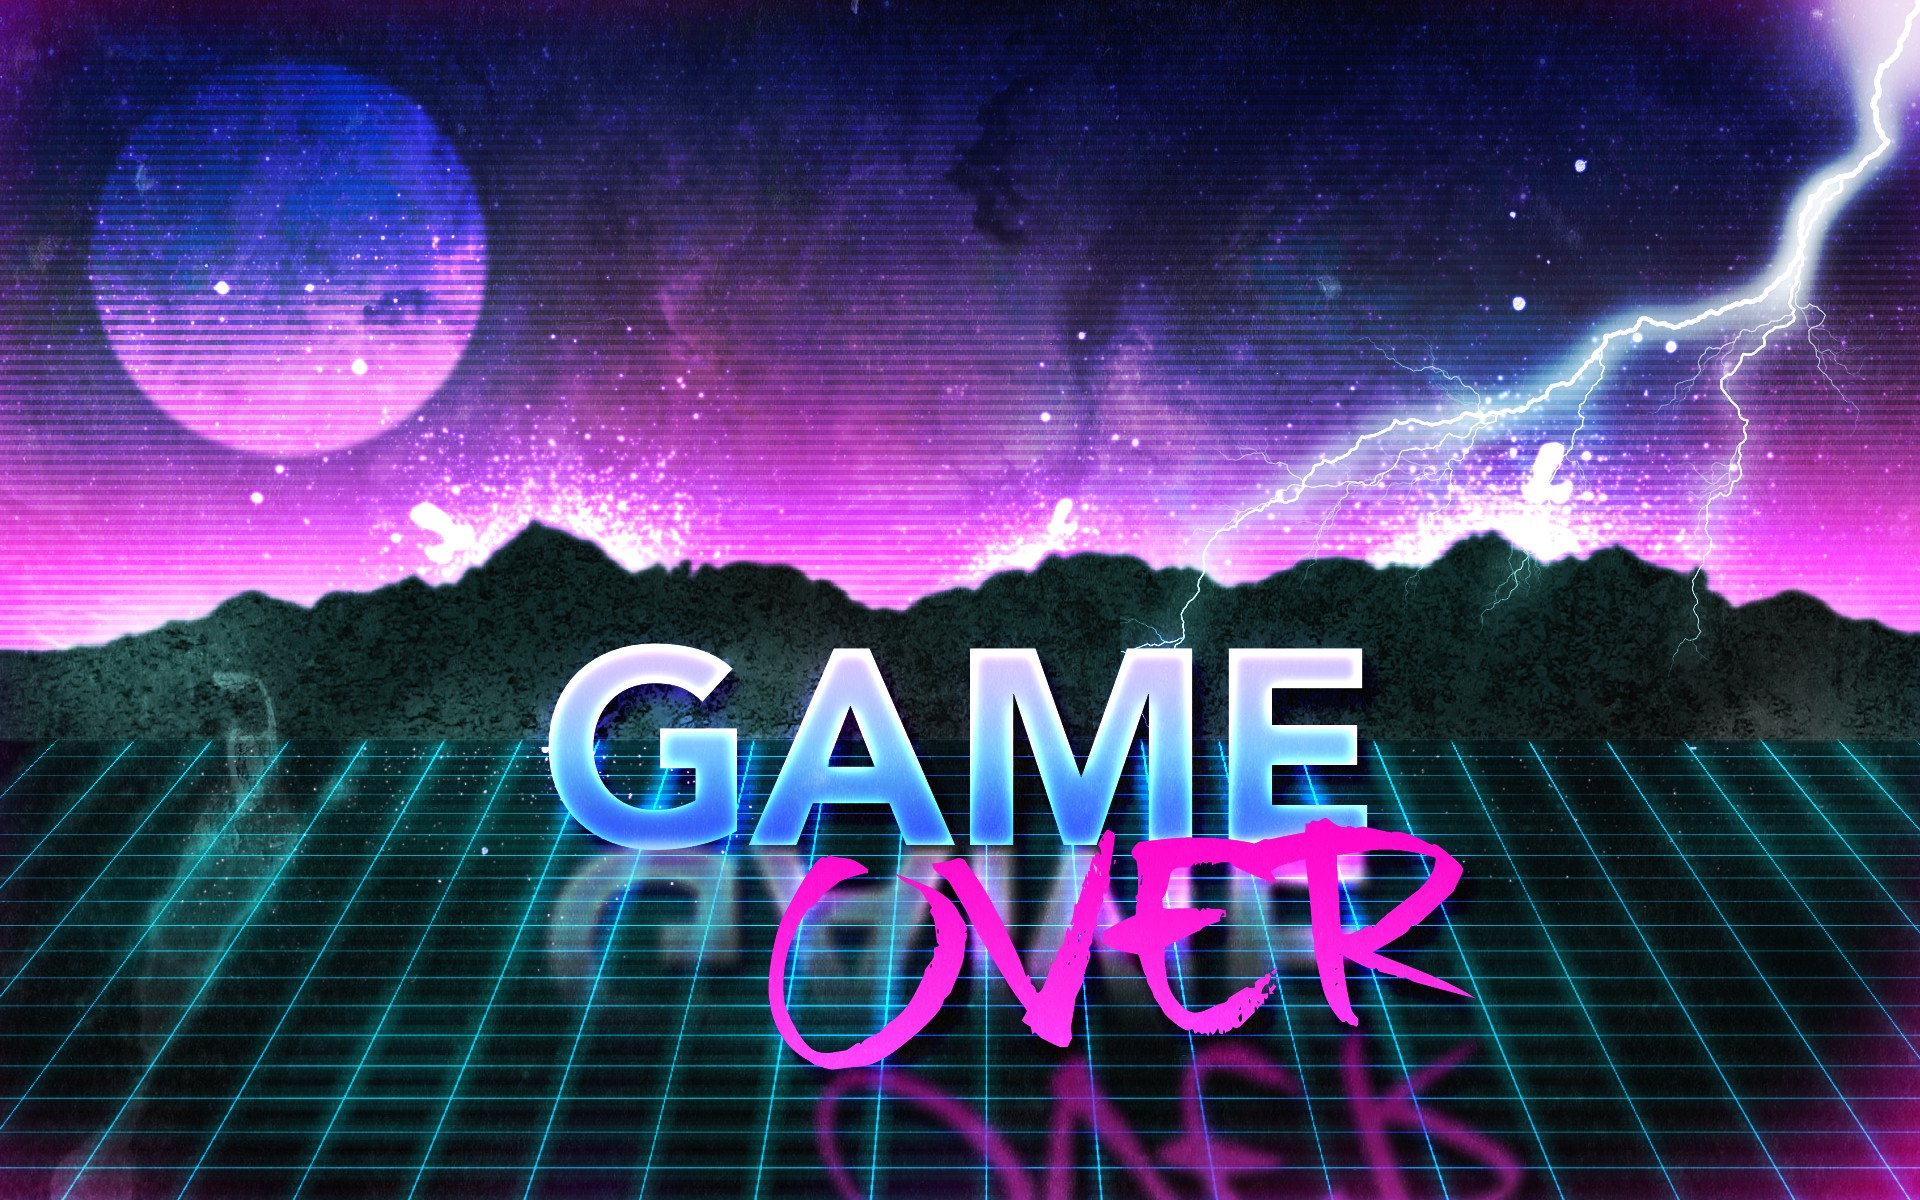 80s wallpaper download free amazing high resolution backgrounds